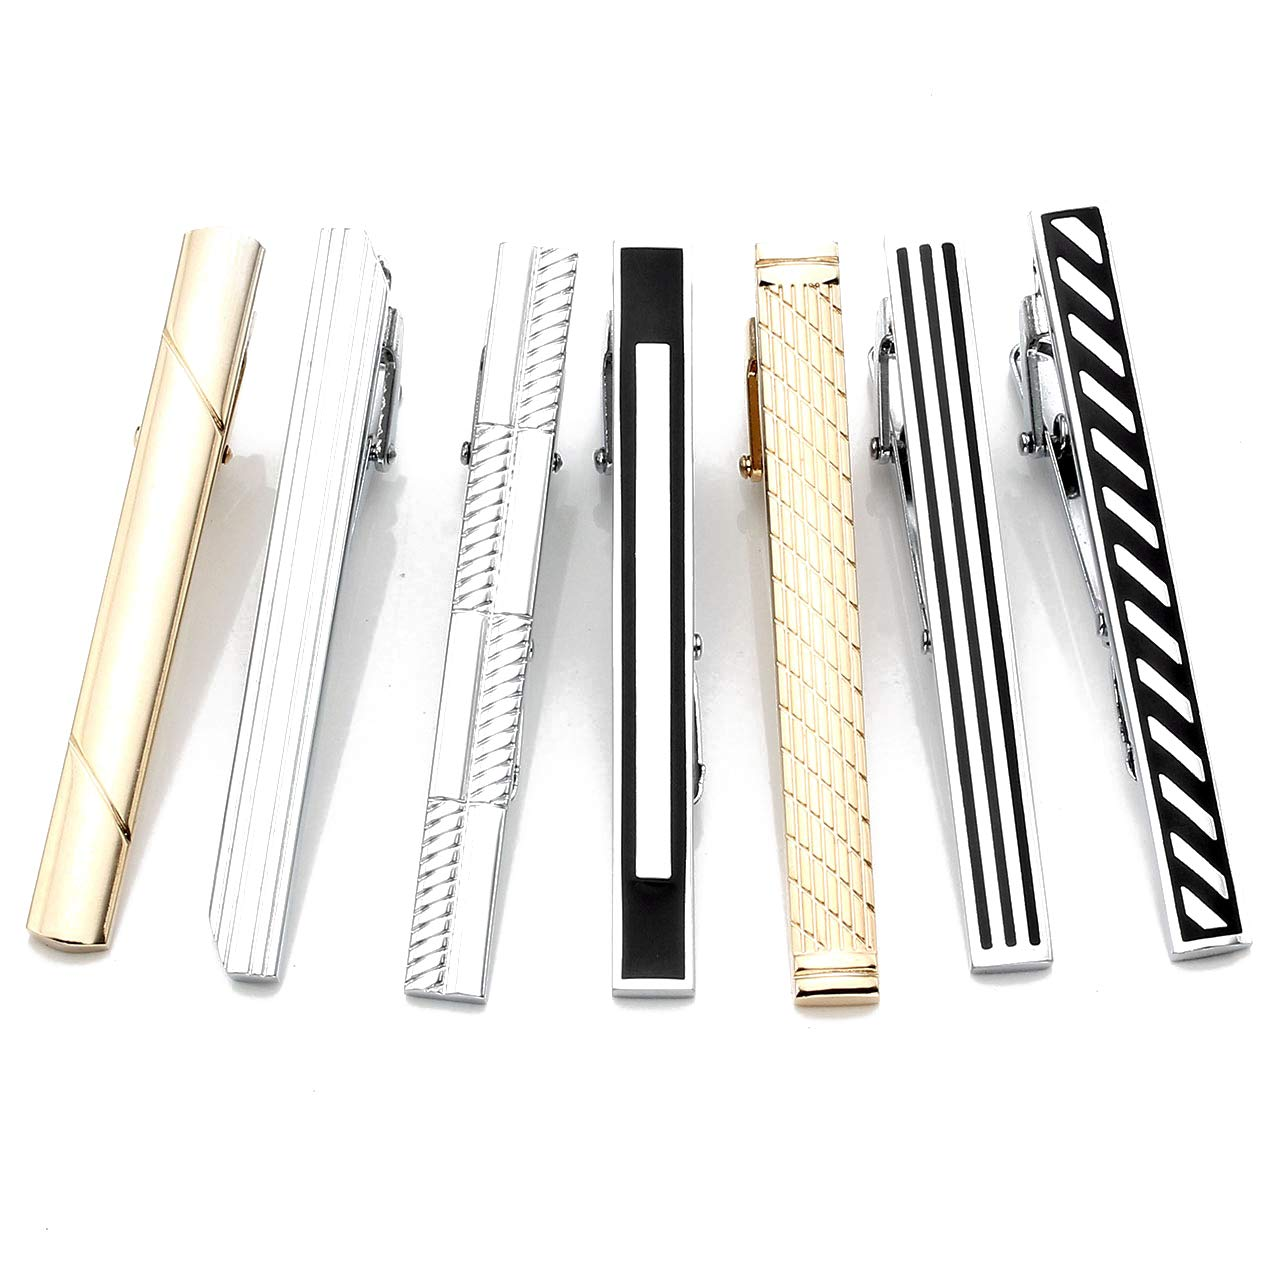 Zysta 7PCS Fashion Gold Silver Black Tie Clips Men Stainless Steel Formal Dress Necktie Bar Clasps Set